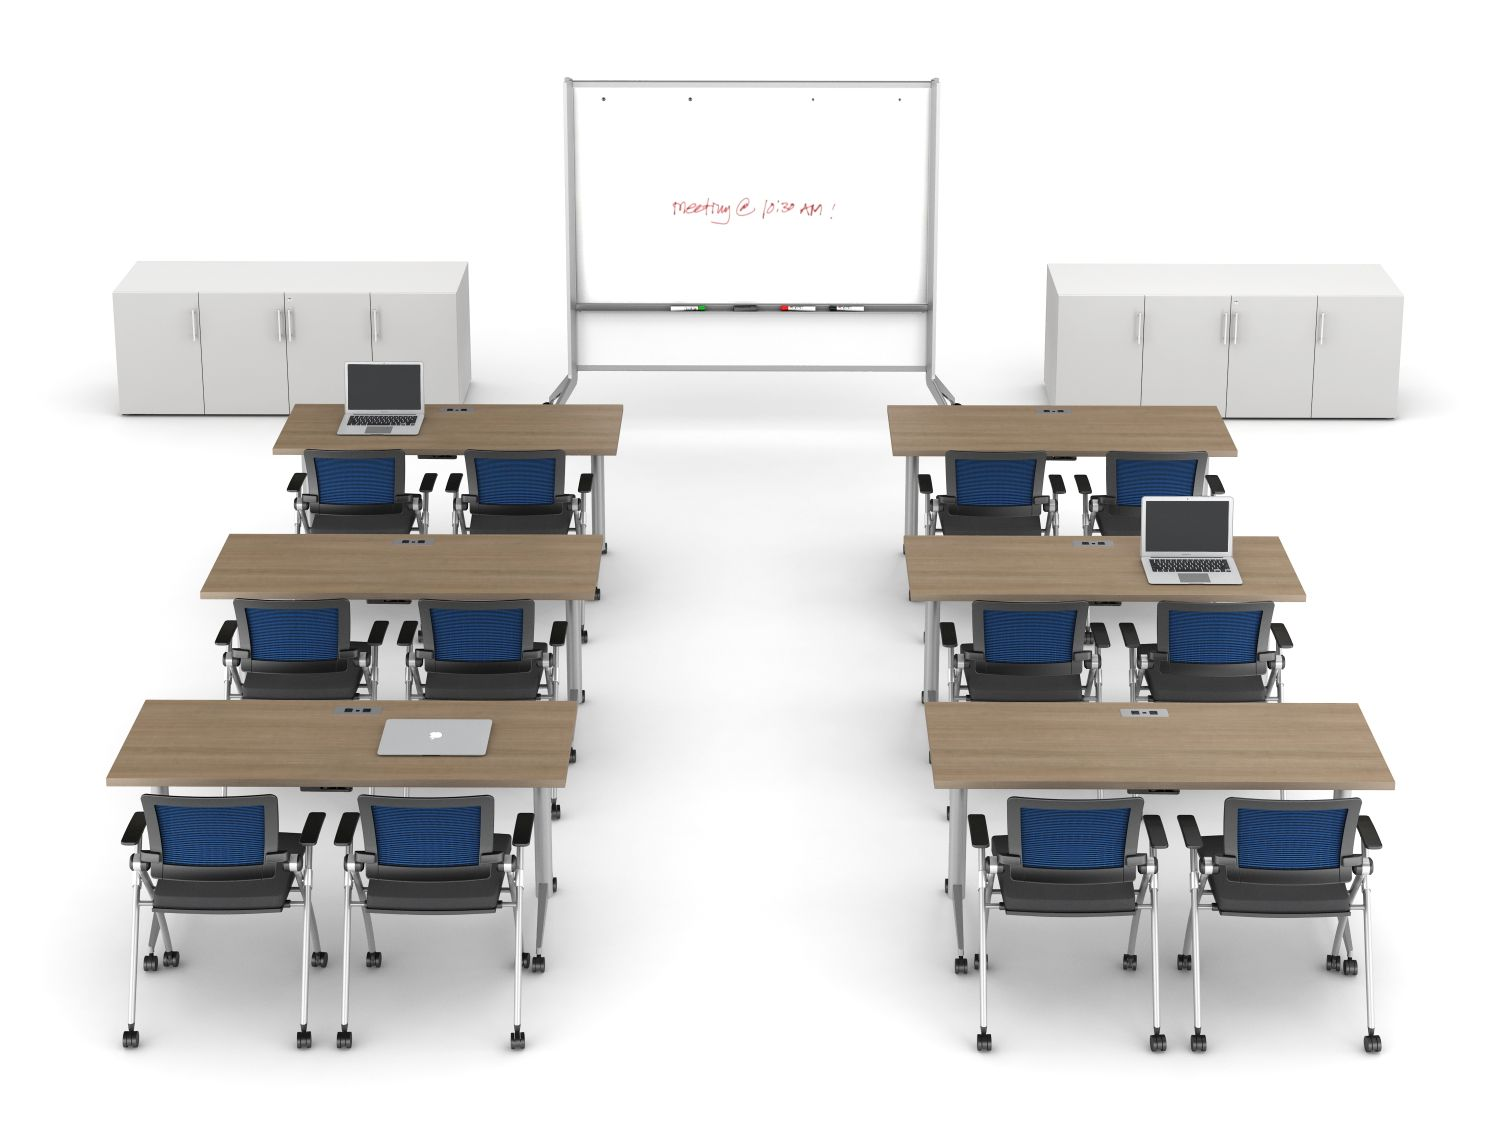 day-to-day-tables-with-t-legs-stow-seating-mobile-whiteboard-and-calibrate-storage_md